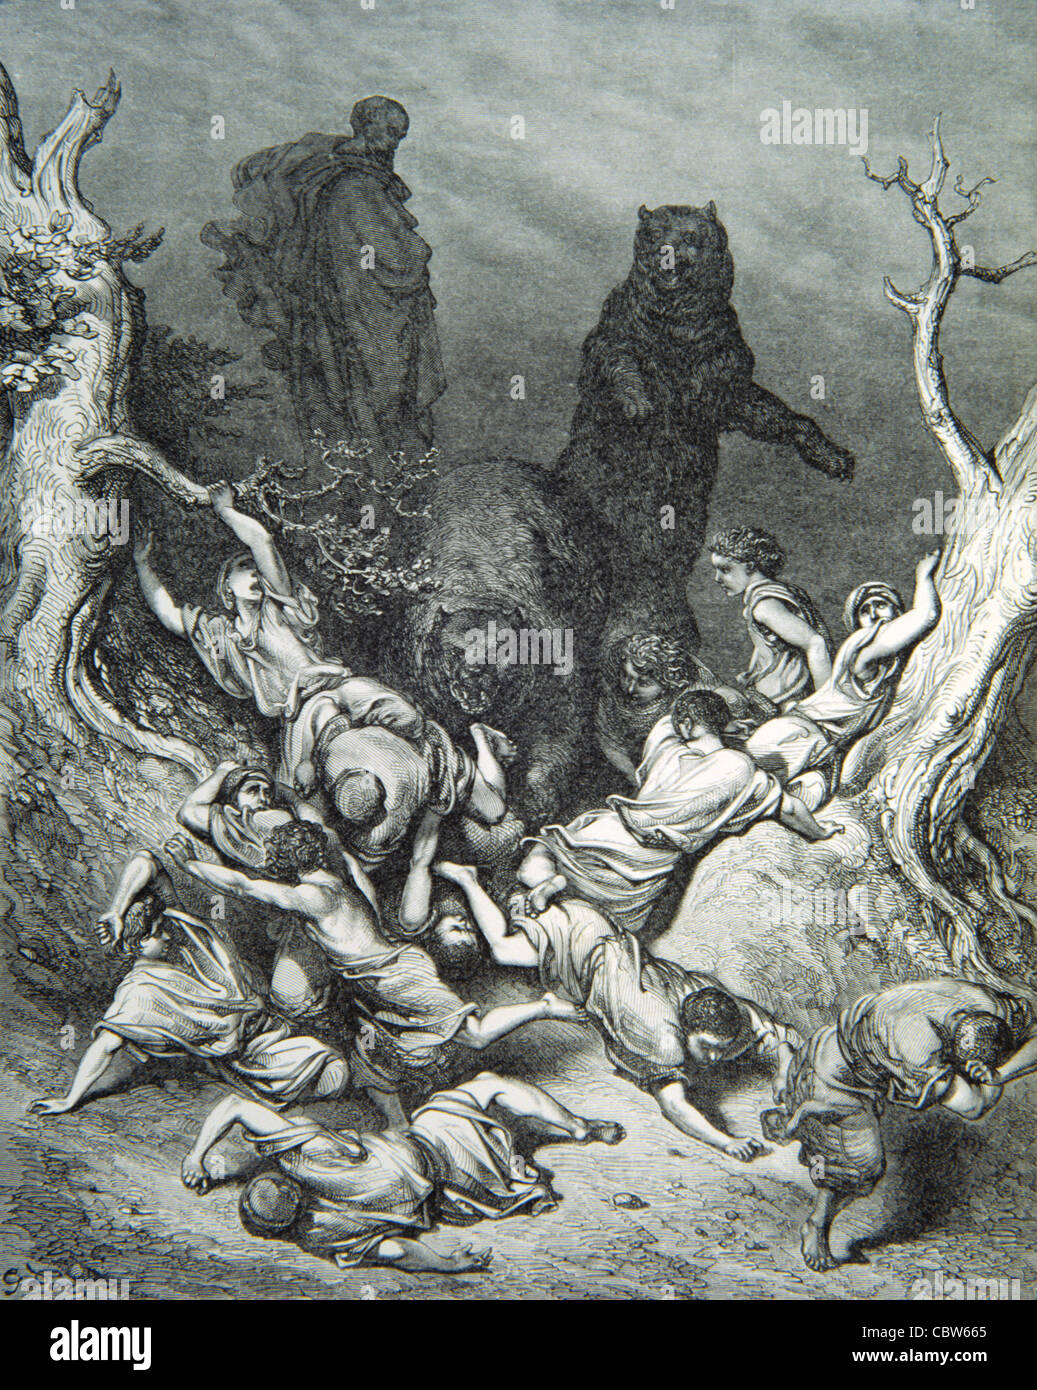 Brown Bears Attacking Children, 'The Children Destroyed by Bears', from The Doré Bible, Engraving by - Stock Image